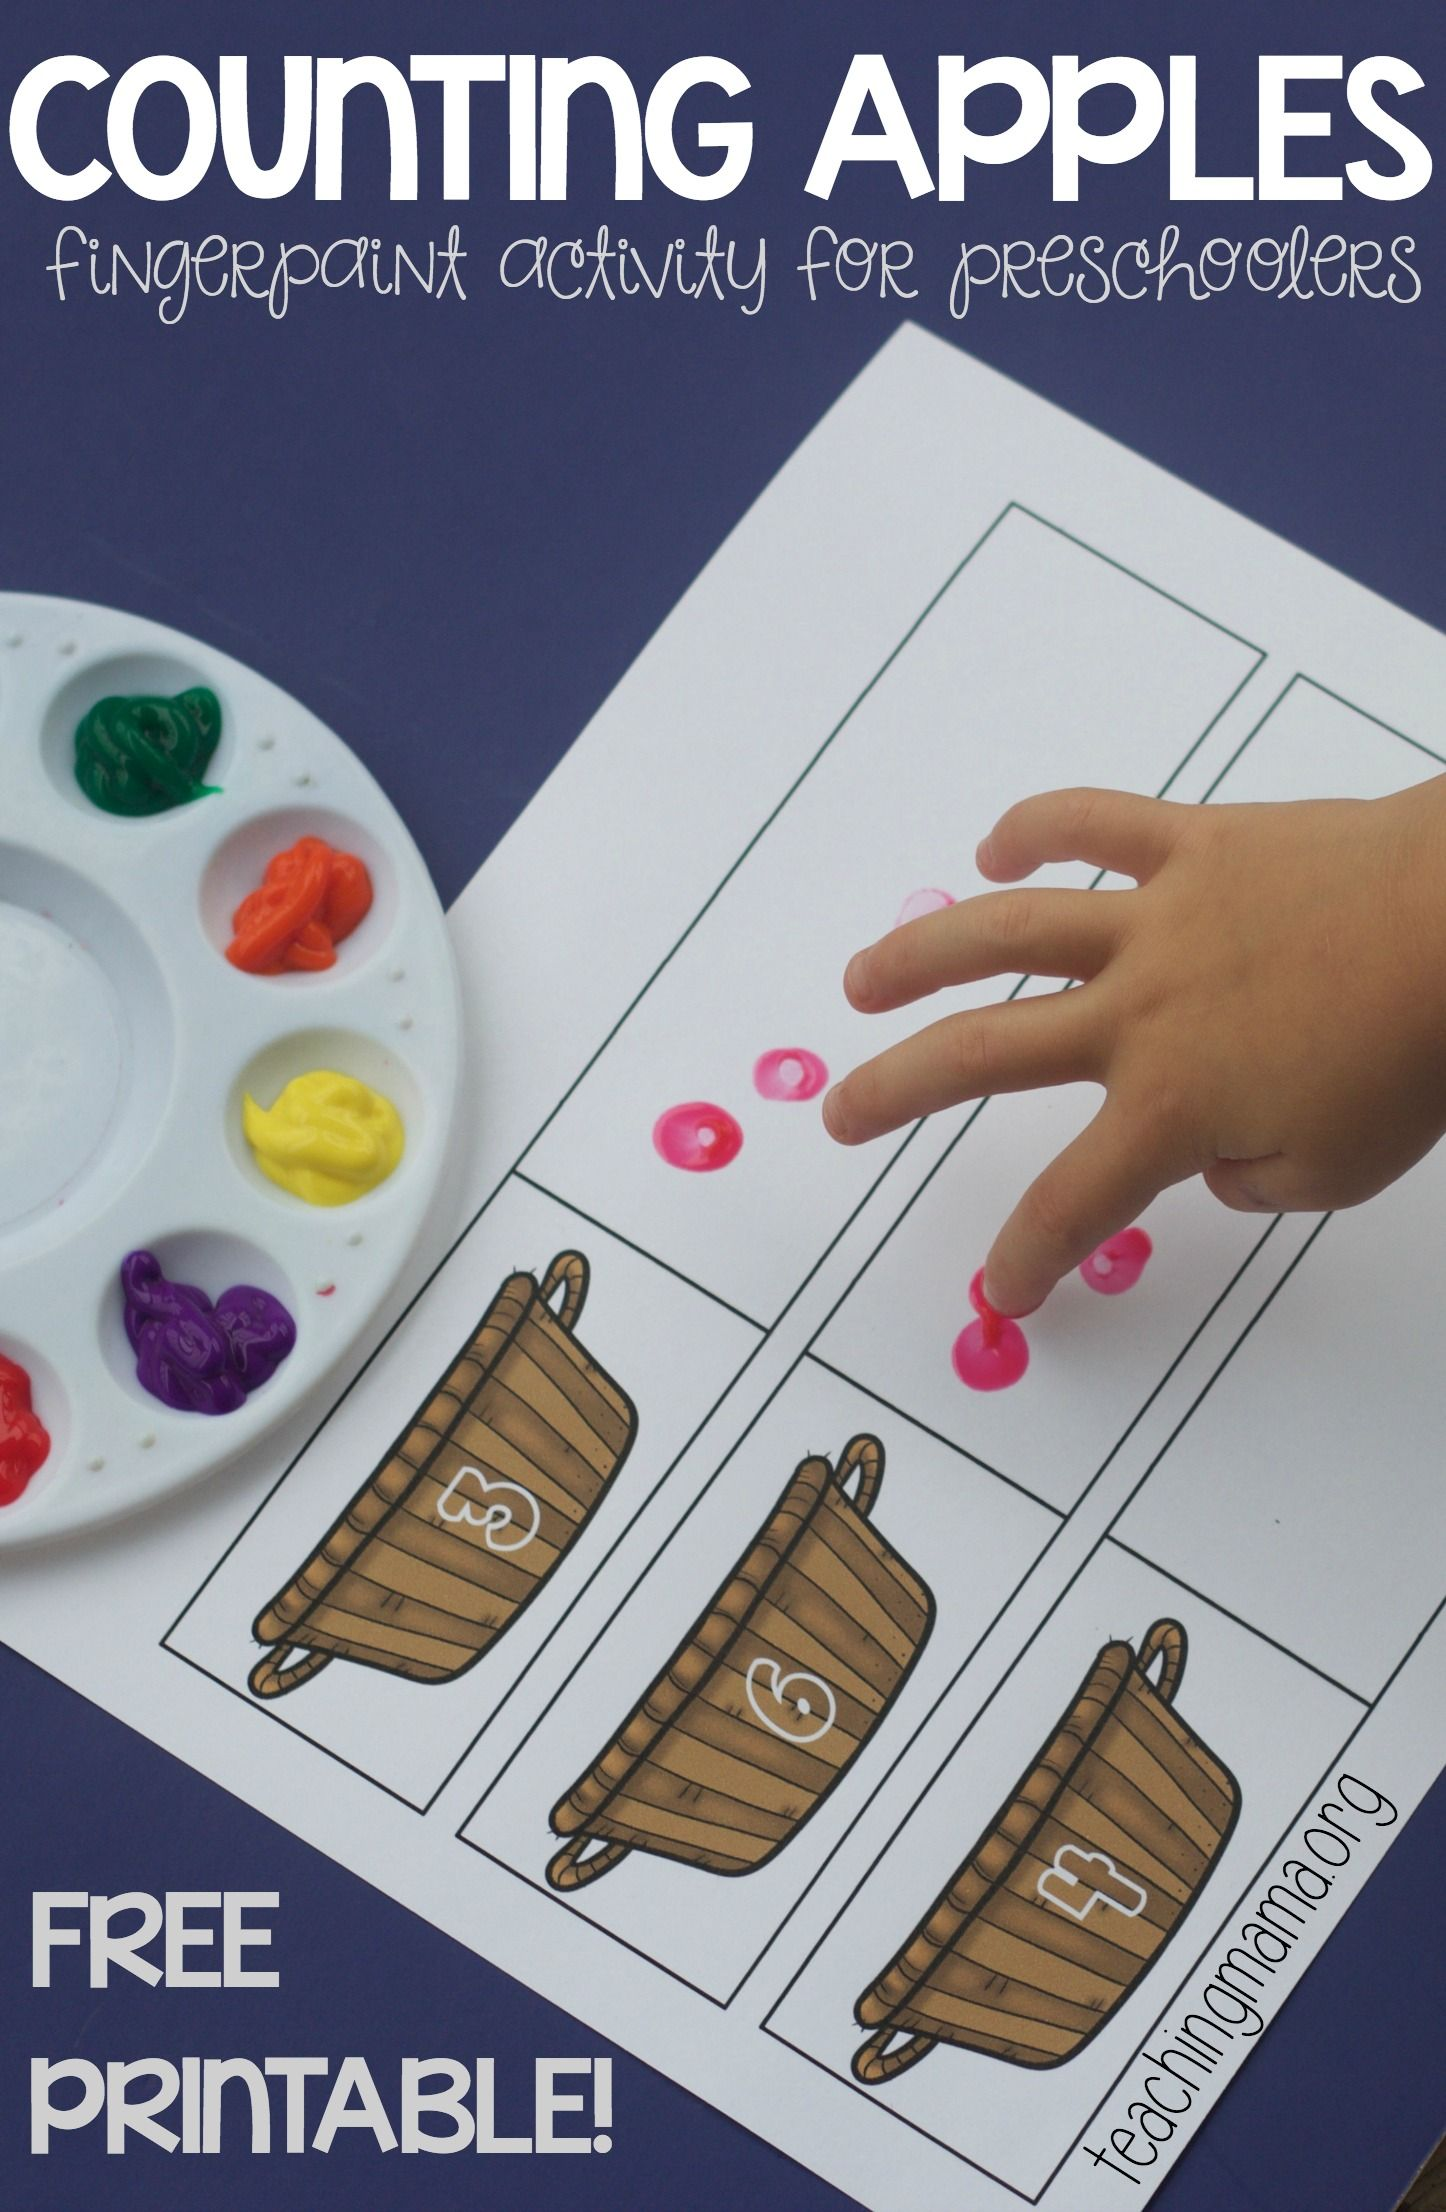 counting apples activity - Printing Activities For Preschoolers